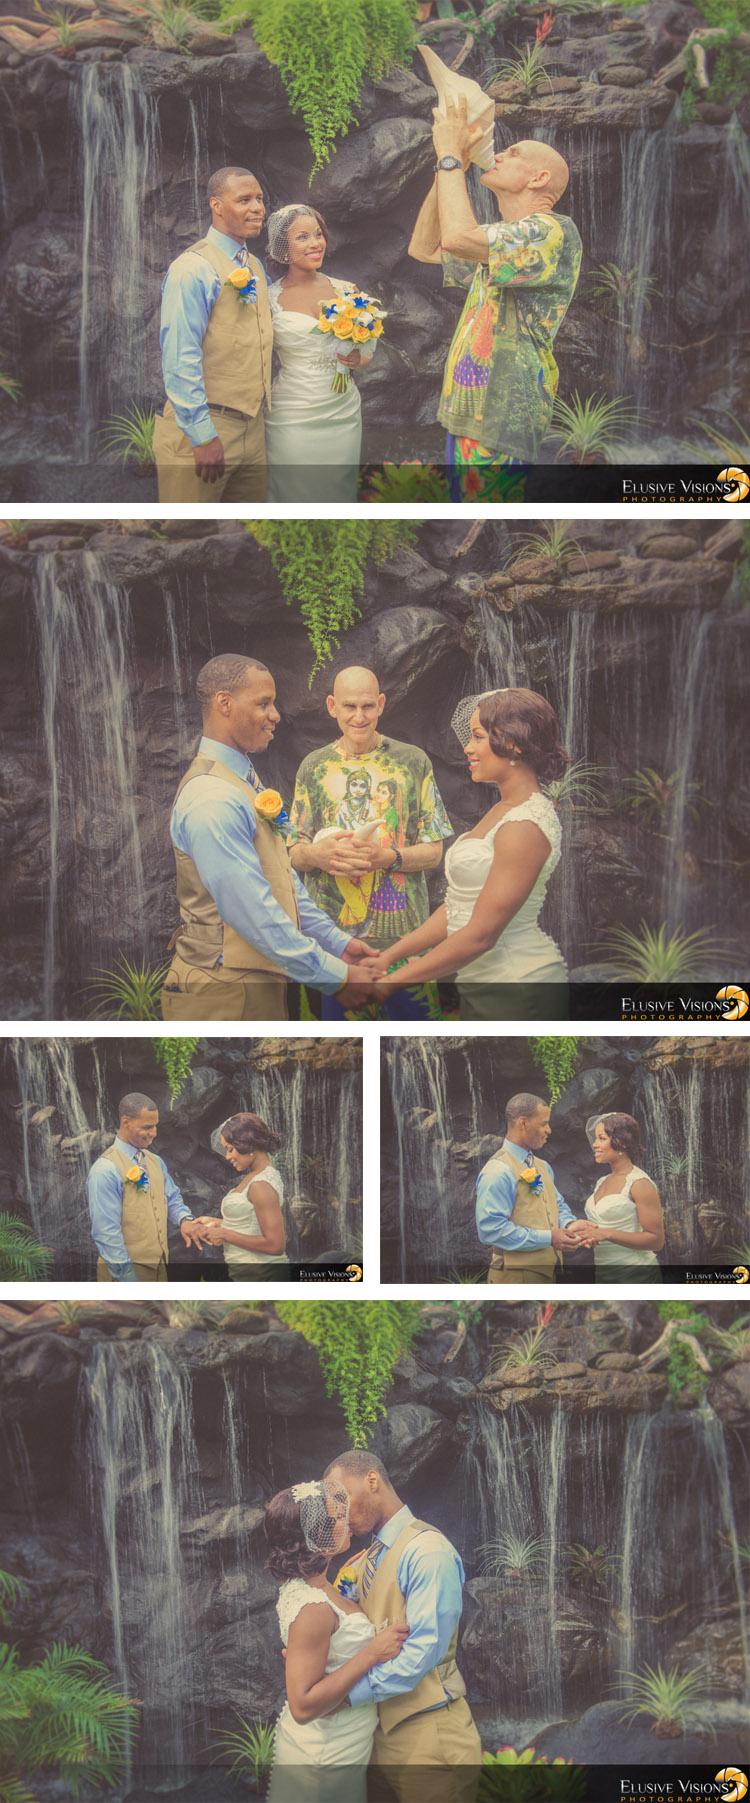 Elusive Visions Hawaii Wedding Photographers 4